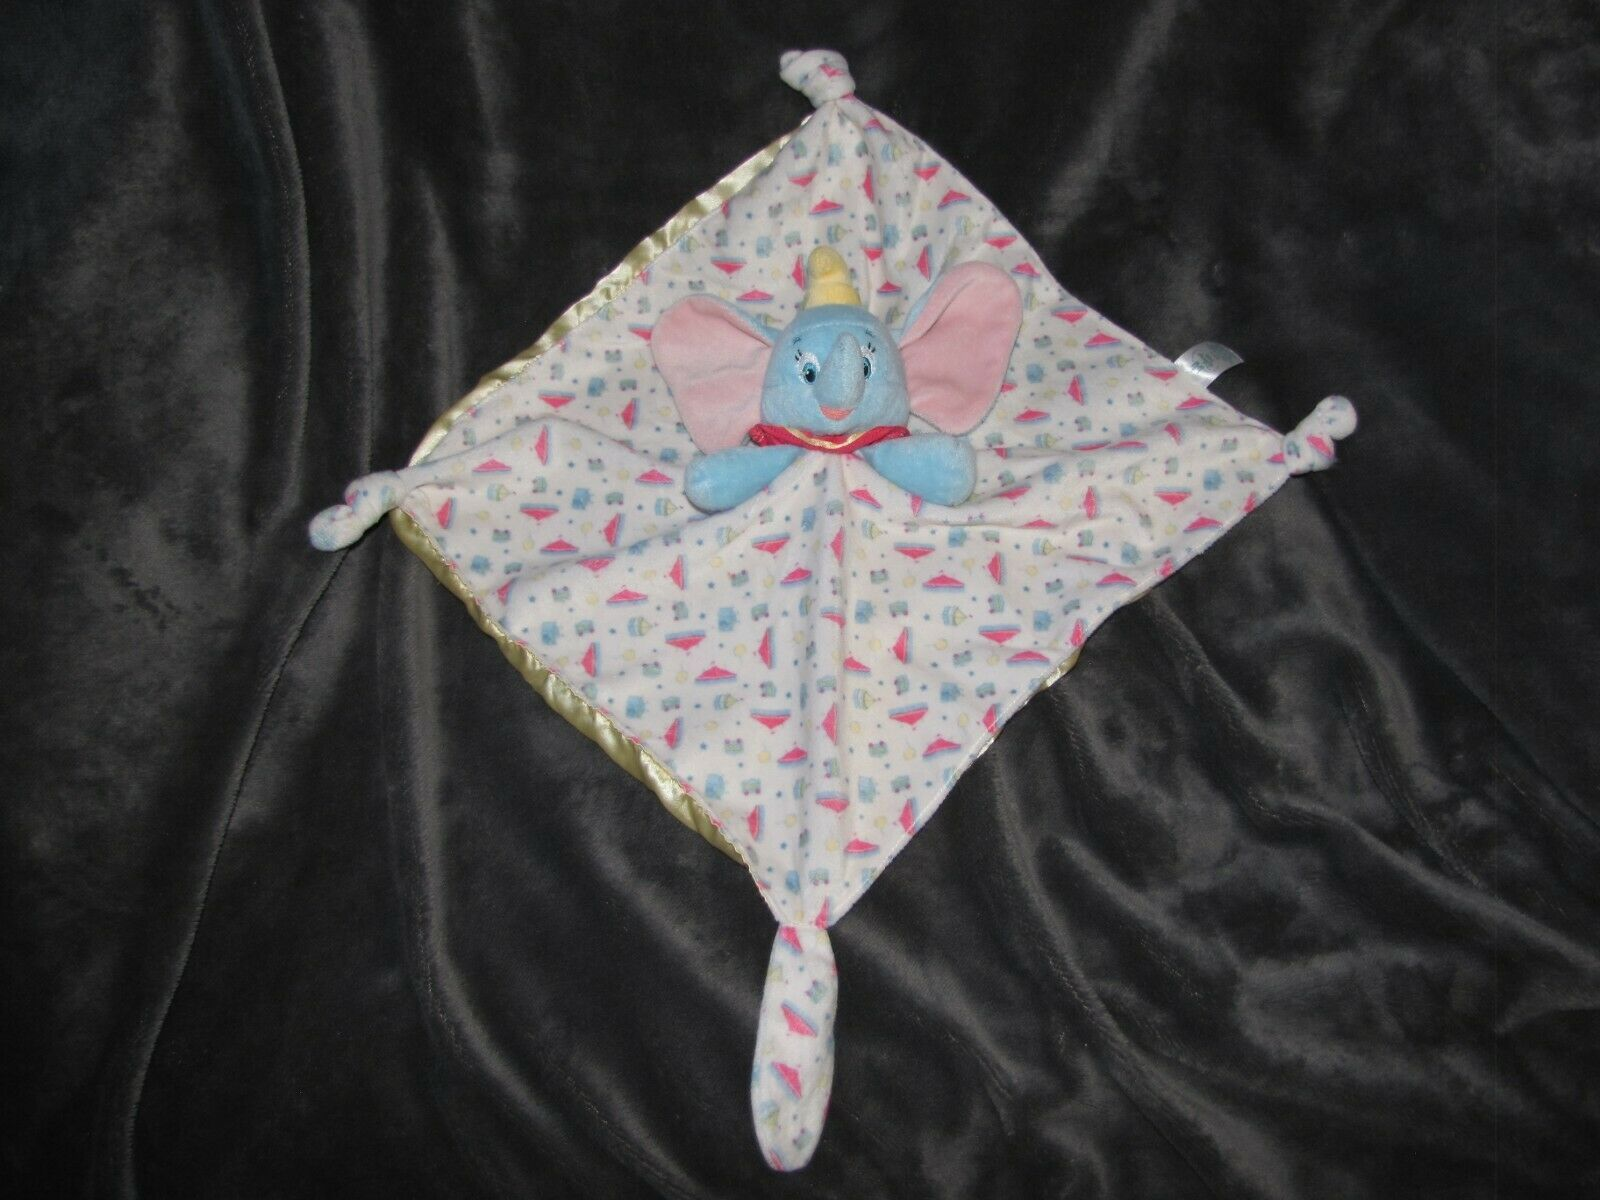 Disney Baby Kids Preferred Plush Dumbo Secuirty Blanket Lovey Elephant Yellow